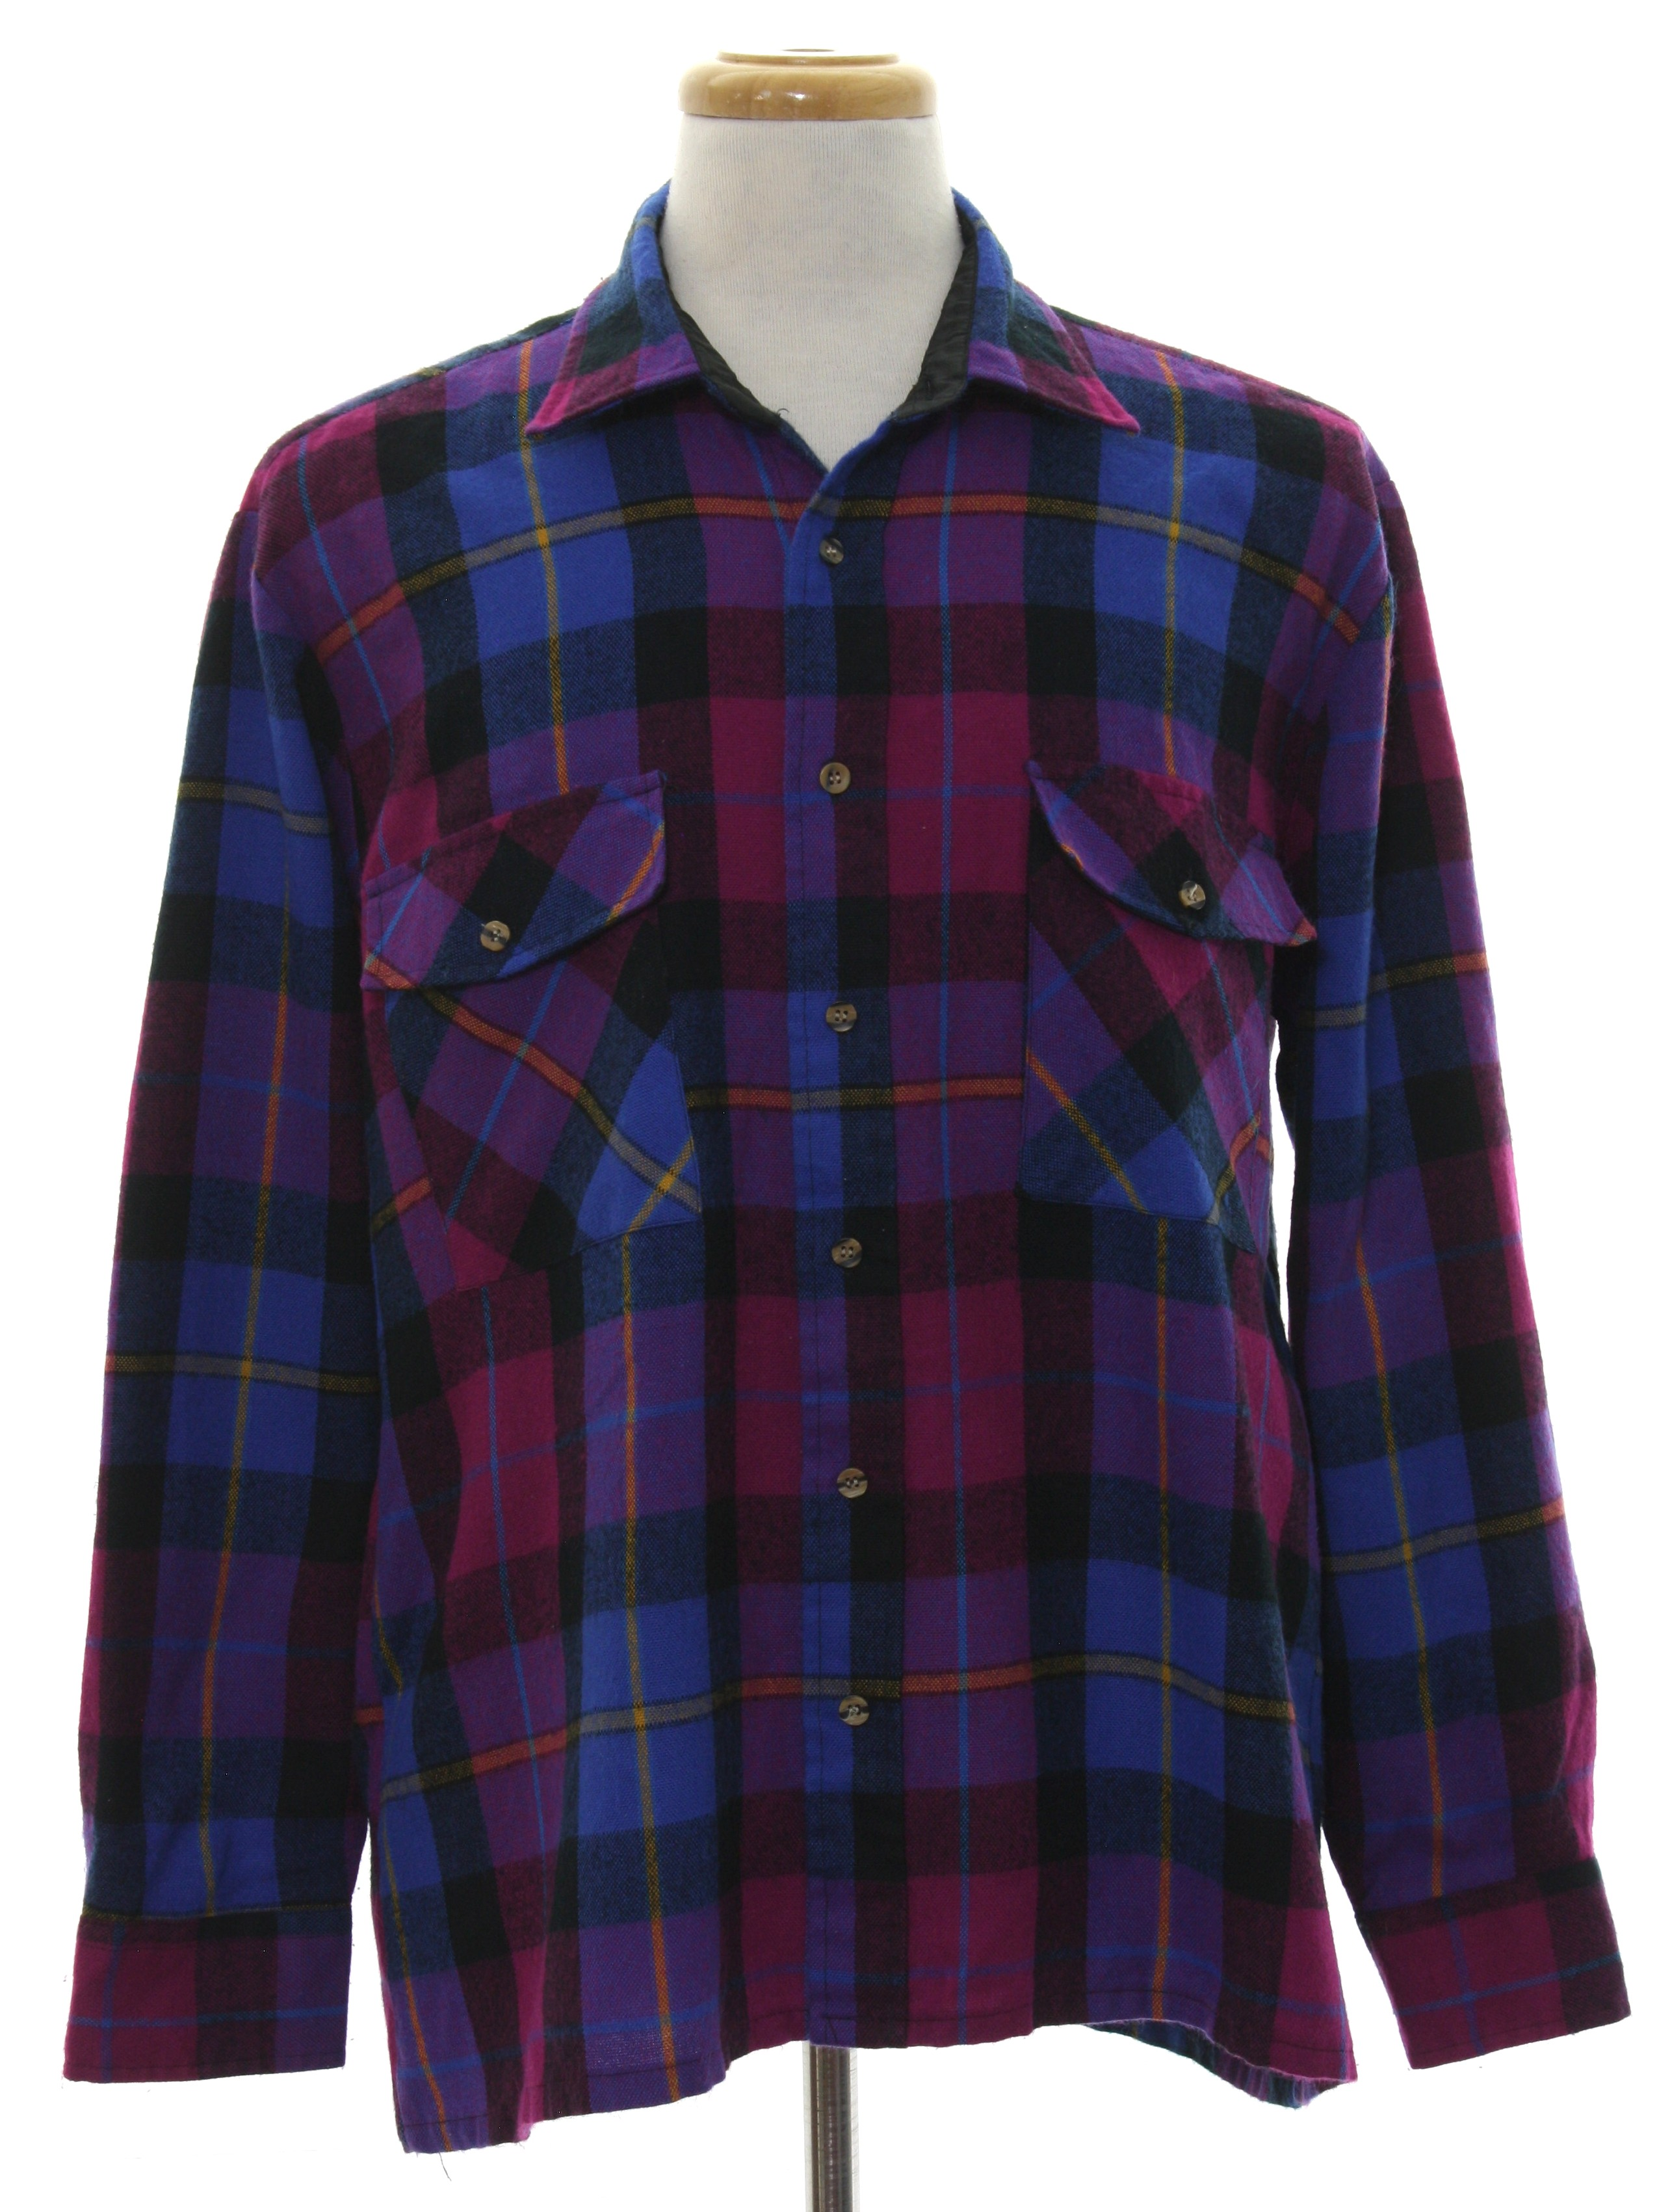 Retro 1980s Shirt Late 80s Or Early 90s Backpacker Outdoors Mens